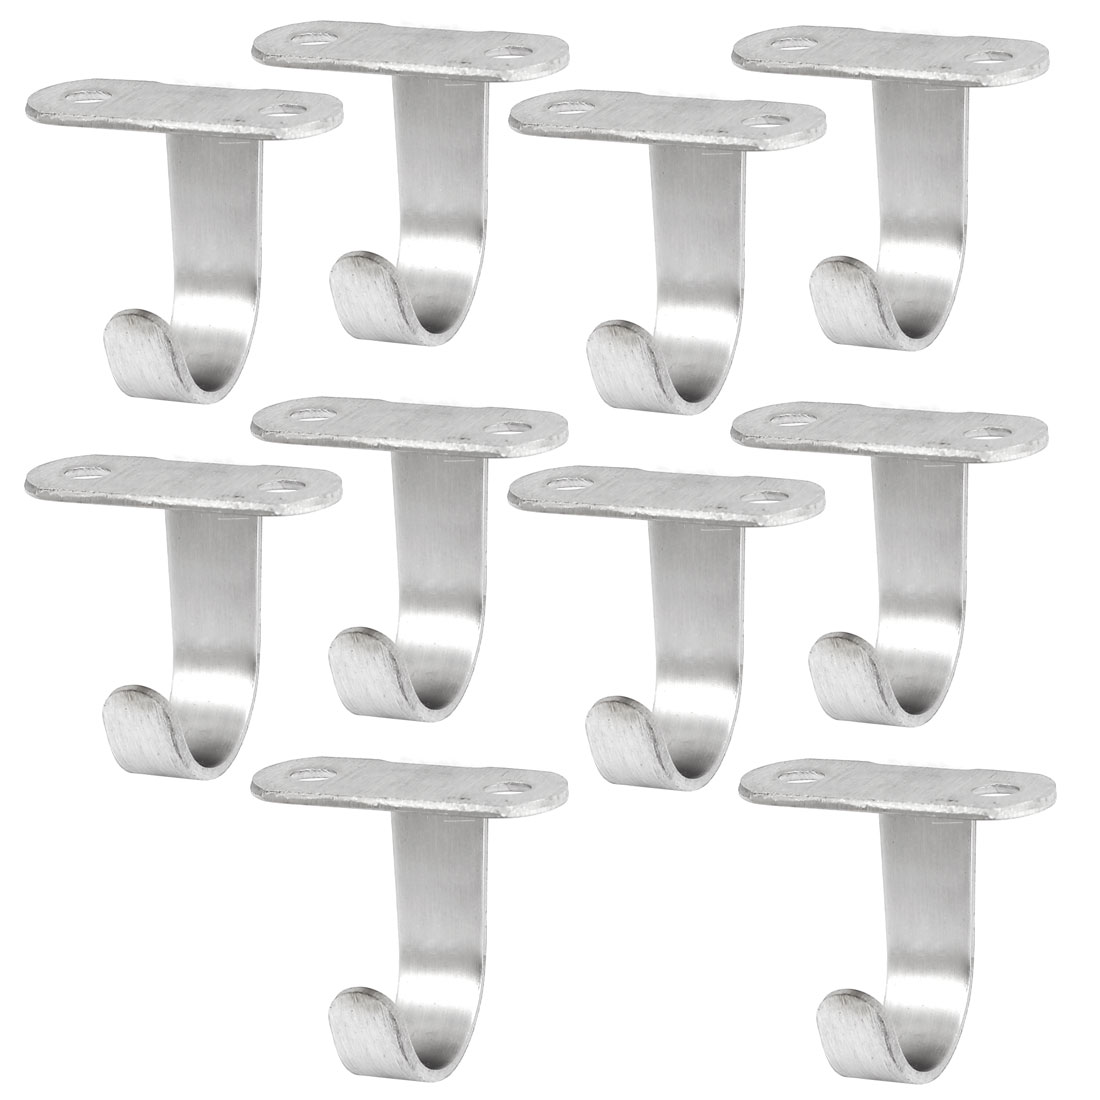 Unique Bargains 10pcs Stainless Steel Wall Hooks Hanger for Wardrobe Shed Top Ceiling